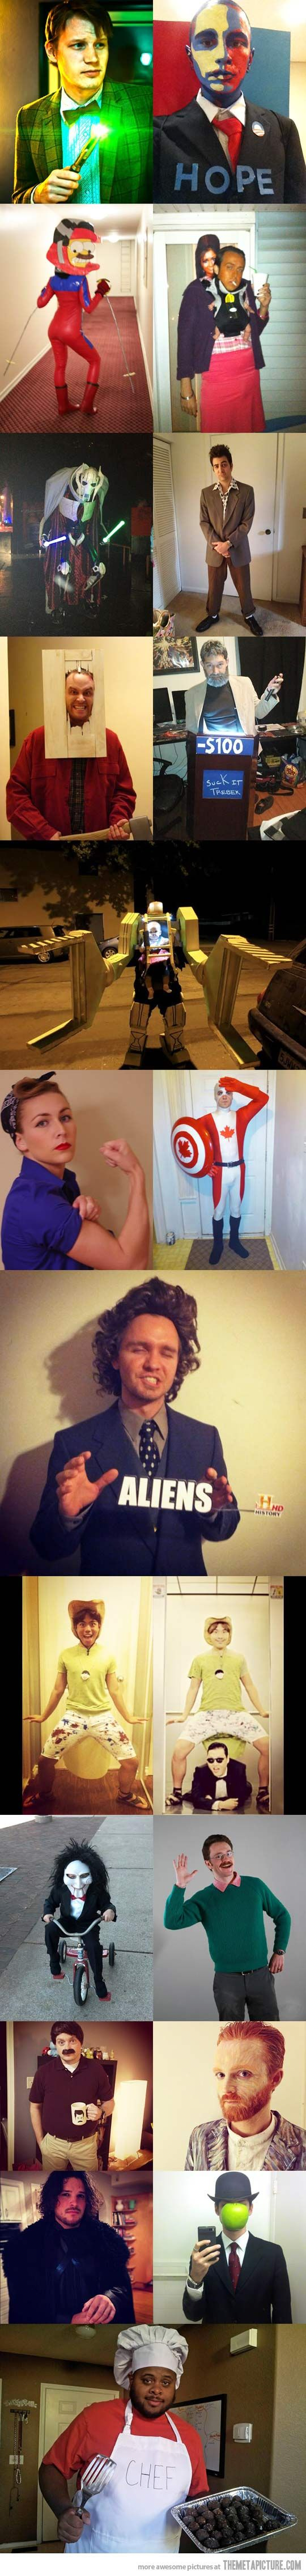 """Scroll down, take a look at Jon Snow, now say """"HOLY $h1t!""""  haha...damn that's some good costume...!"""